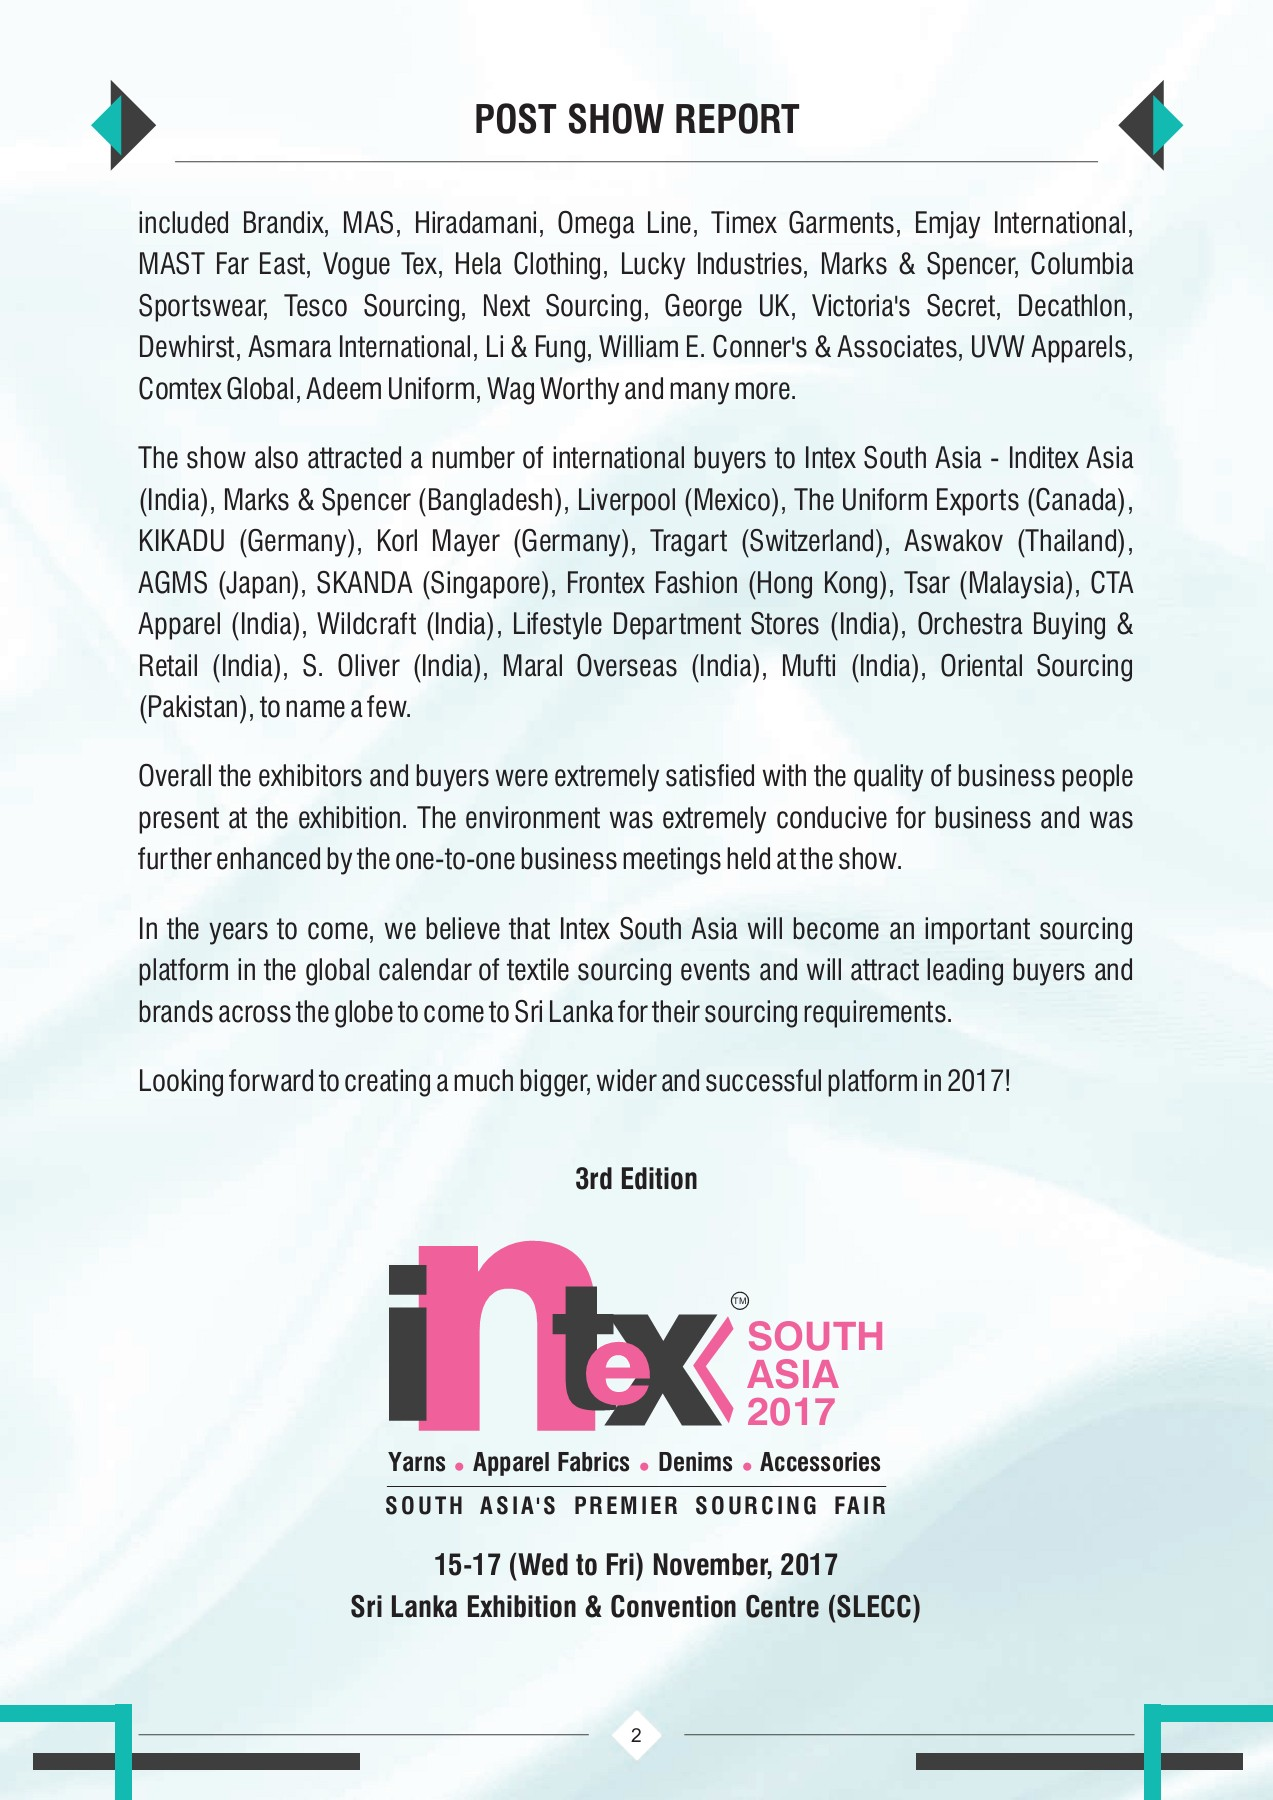 INTEX SOUTH ASIA POST SHOW REPORT 2016 Pages 1 - 50 - Text Version